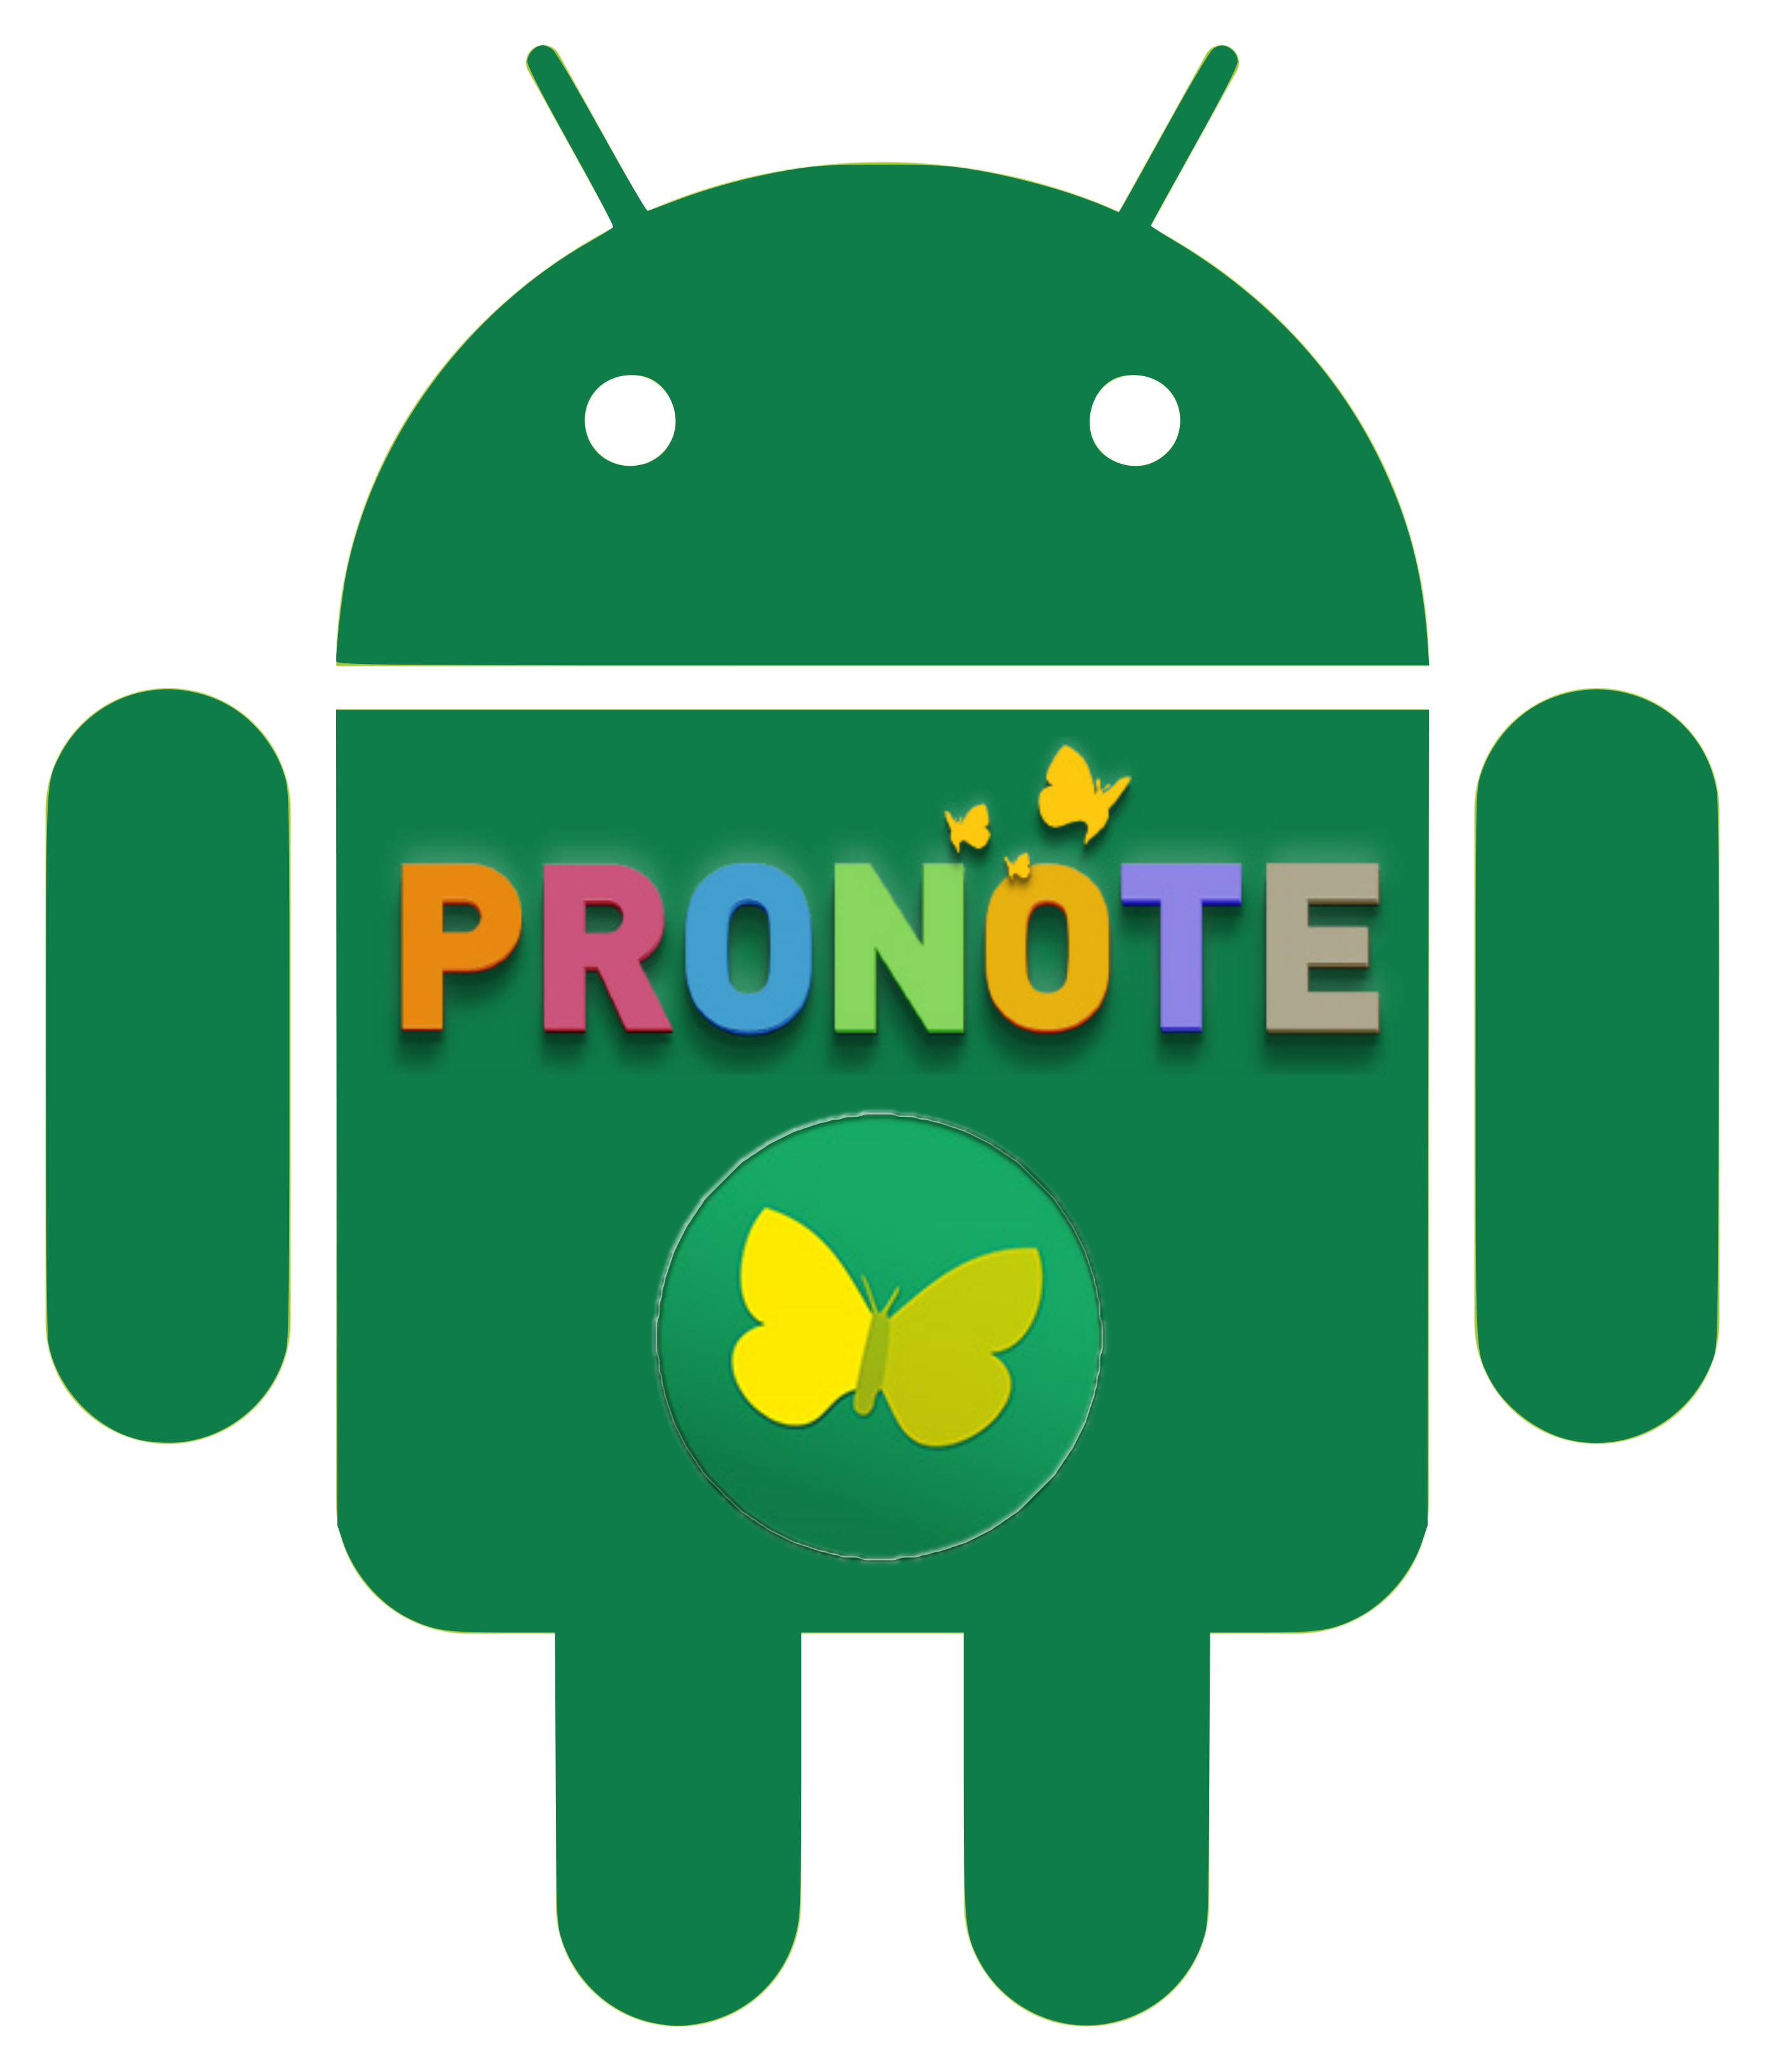 Installer et utiliser ProNote sur smartphone android Android